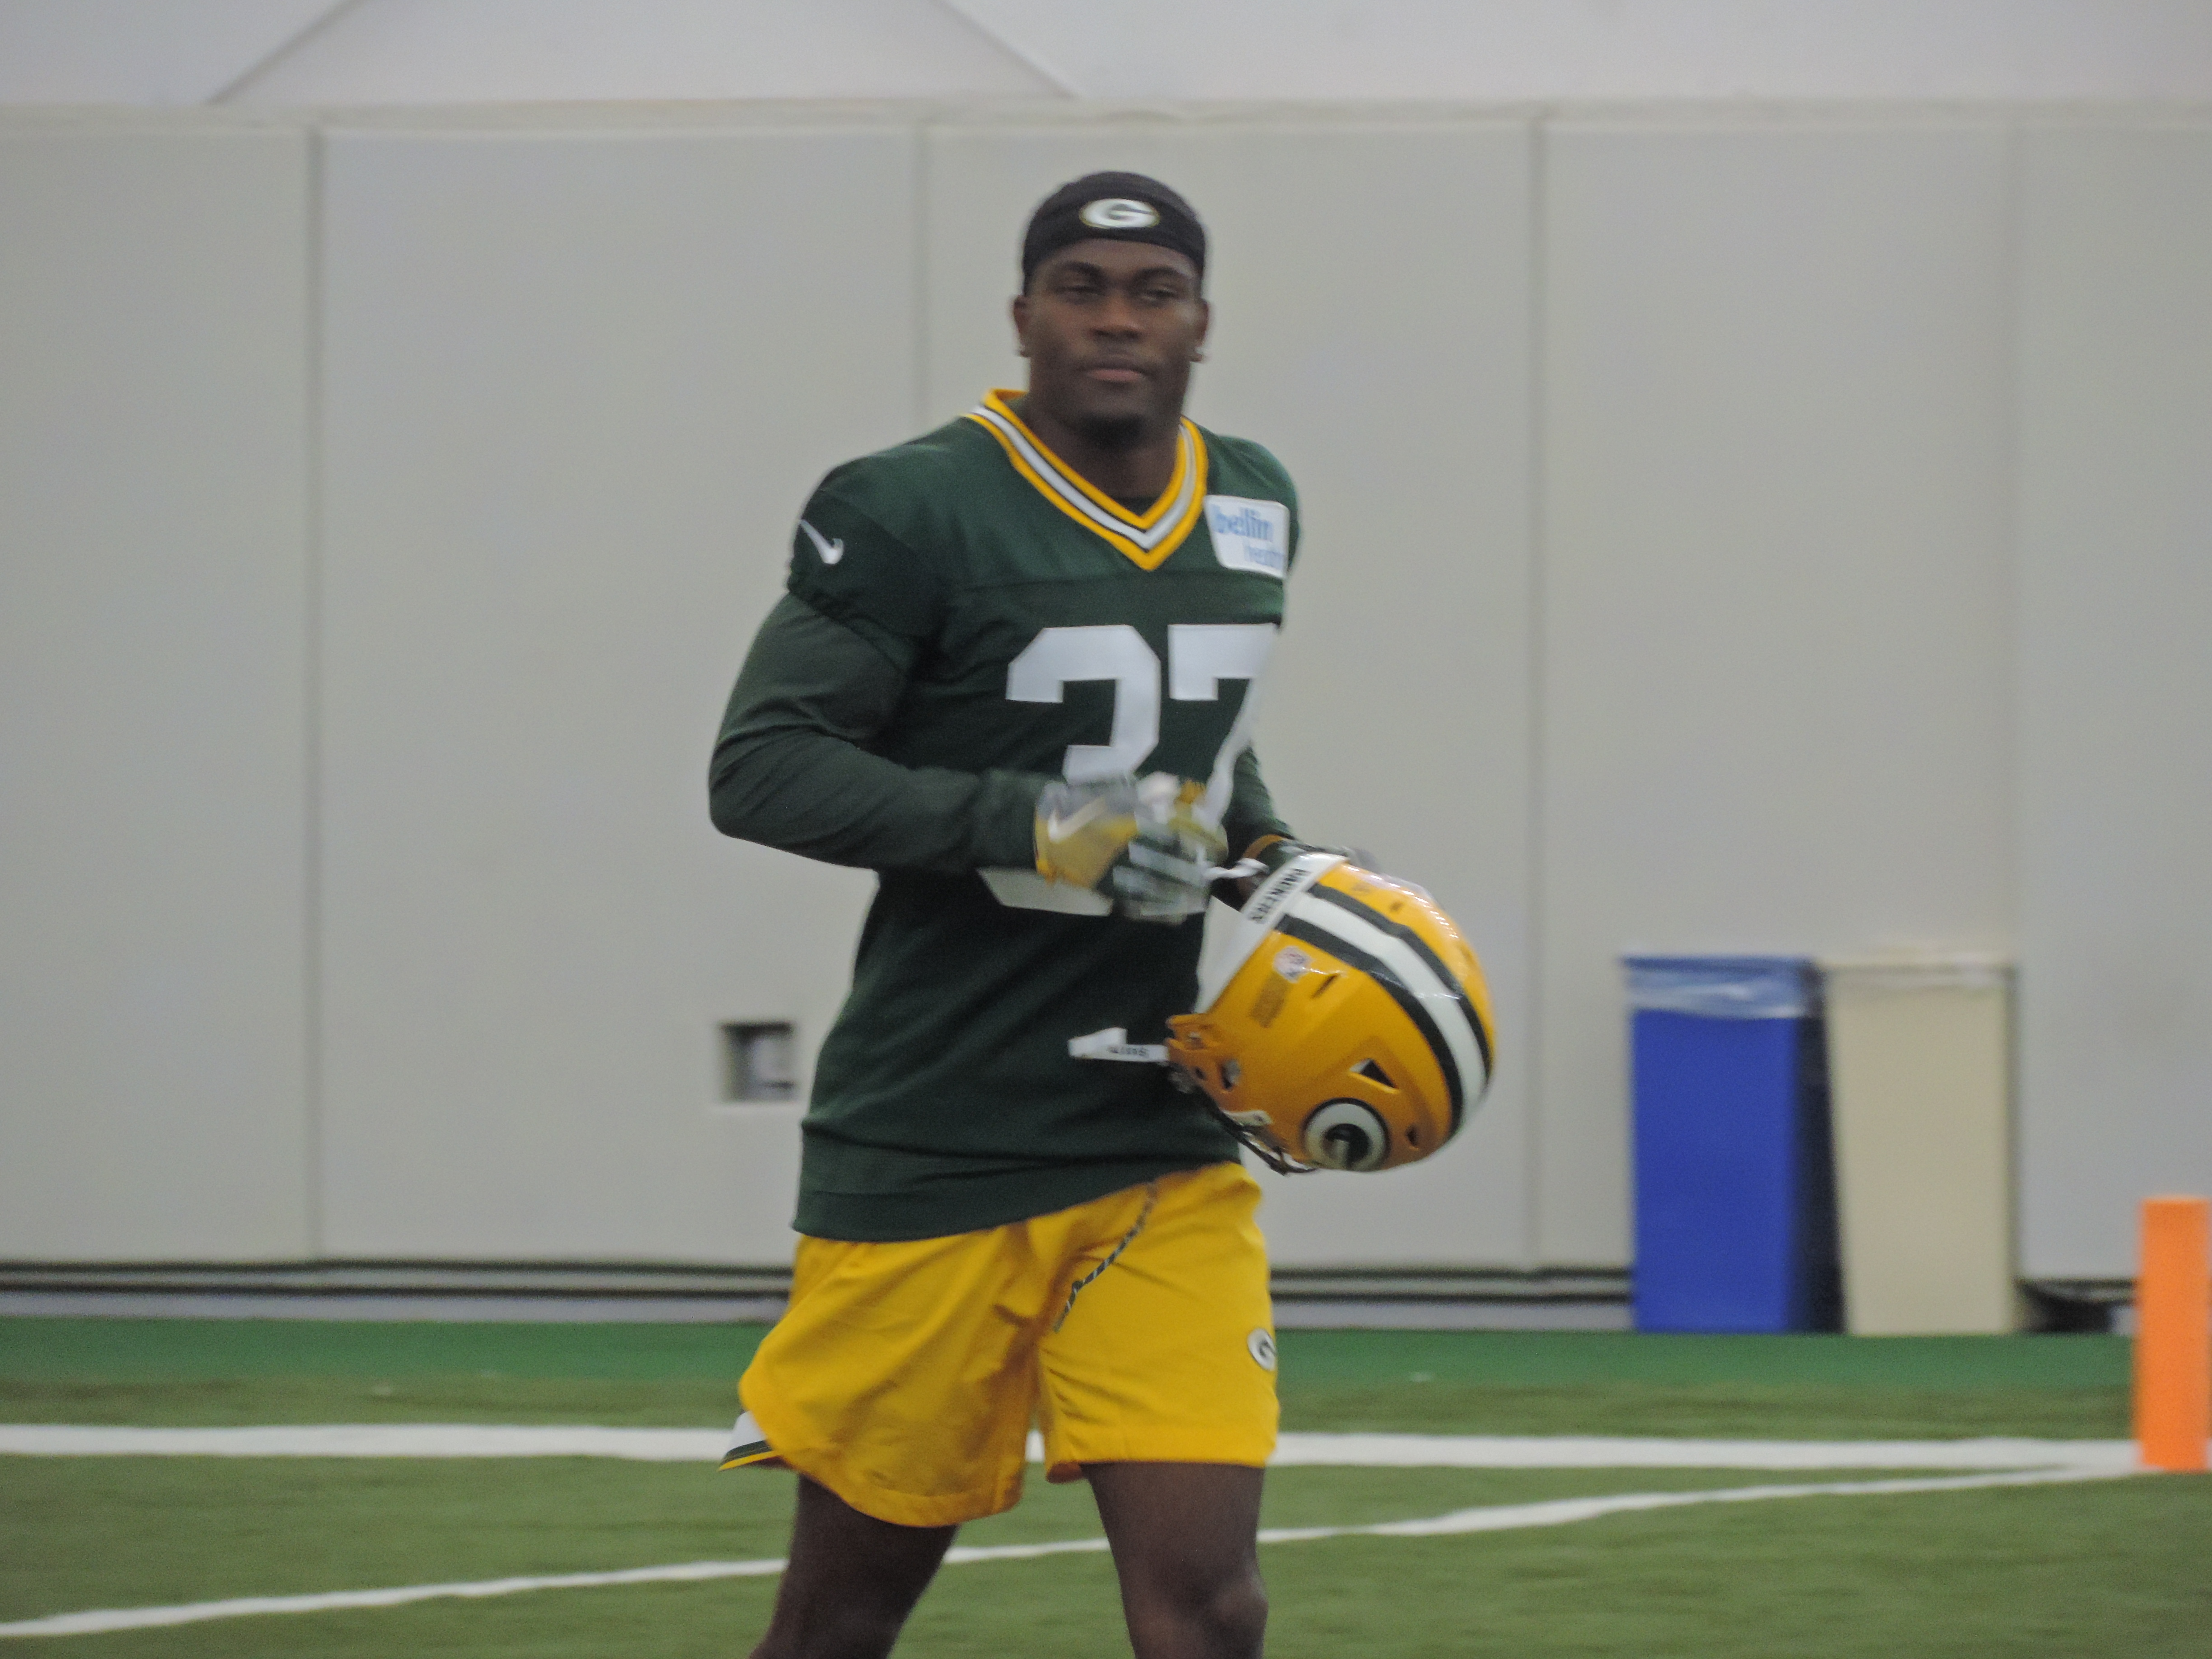 Jackson signs deal with Packers